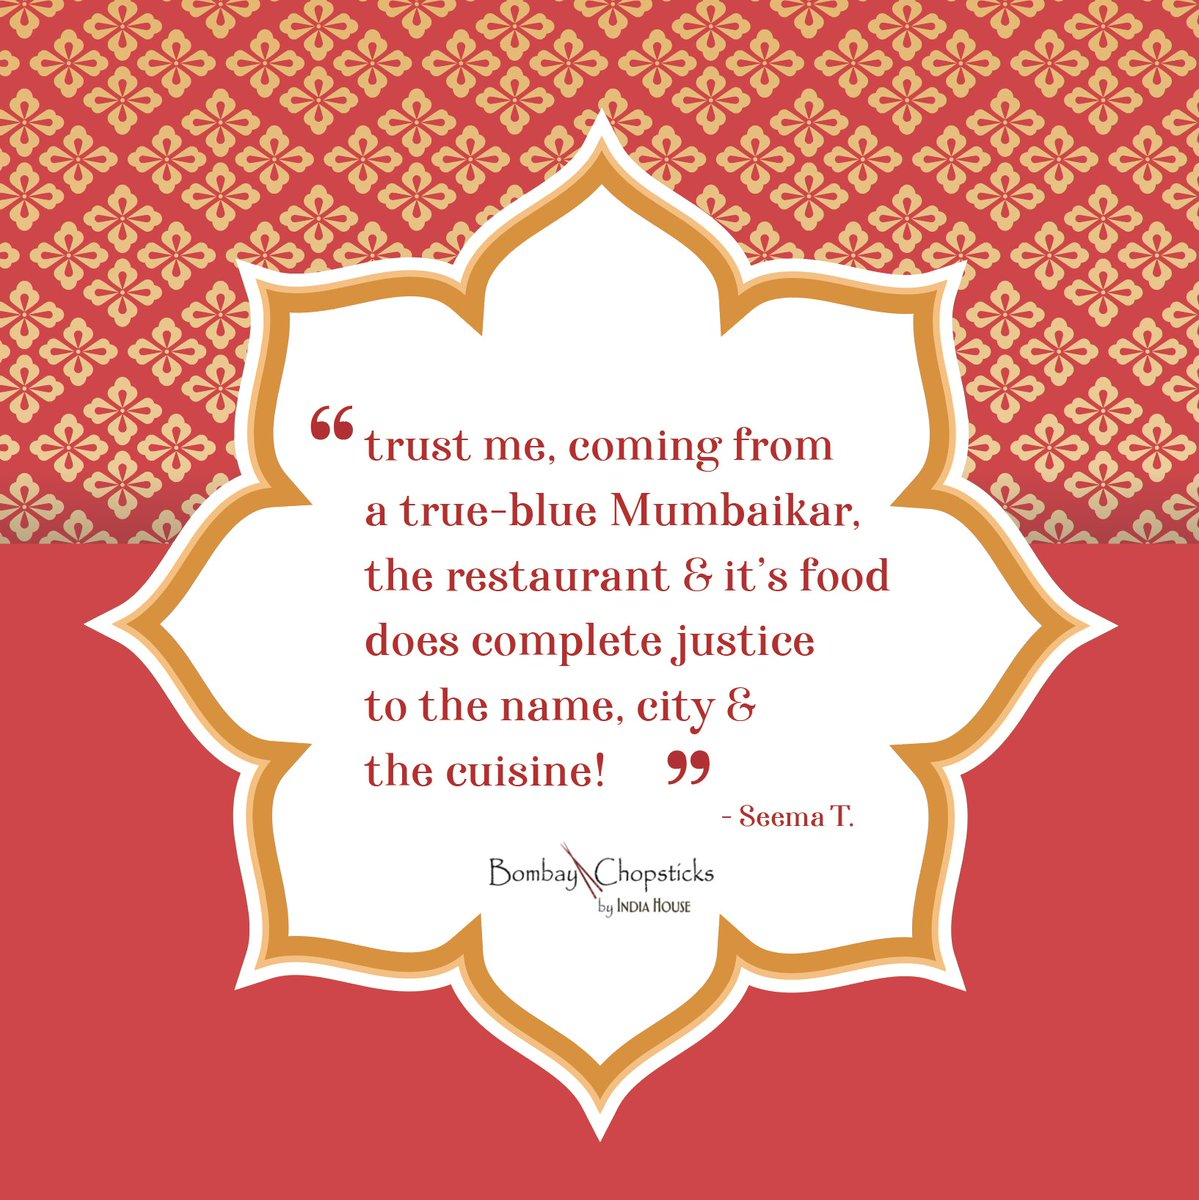 We are so honored to remind you of the real-deal back home in India ✨🥢 That is one of the highest compliments we can receive 🙏  #bombaychopsticks #bombaychopsticksbyindiahouse #IndianFood #ChineseFood #IndoChineseFusion #NapervilleIL #HoffmanEstates https://t.co/DOa1g9VuId